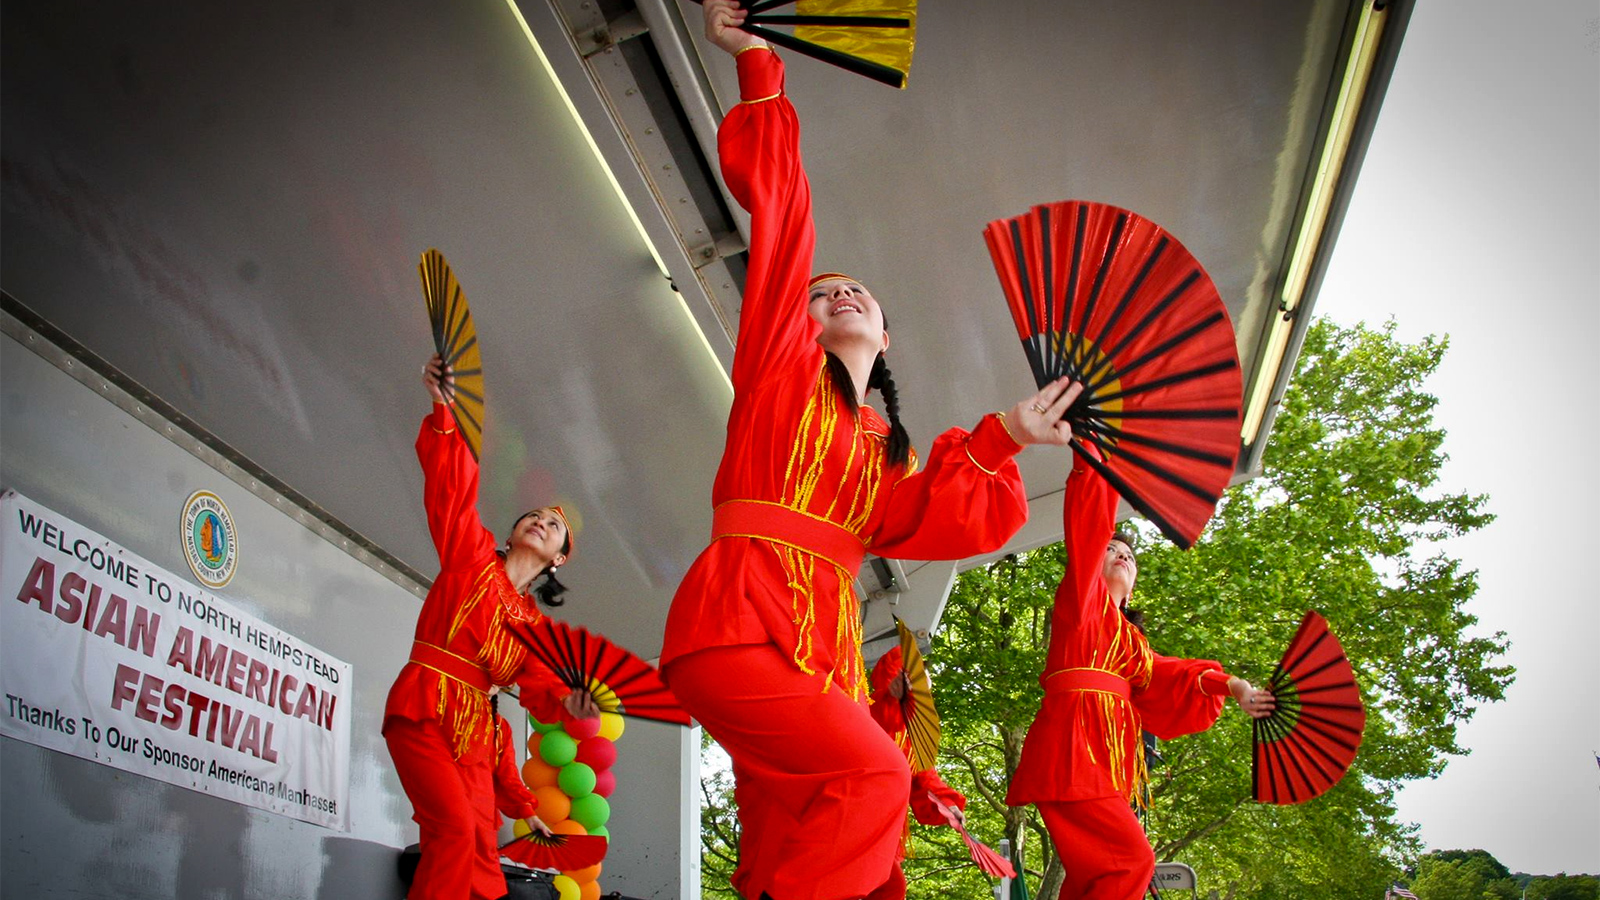 Asian-American Festival celebrates culture in 10th year